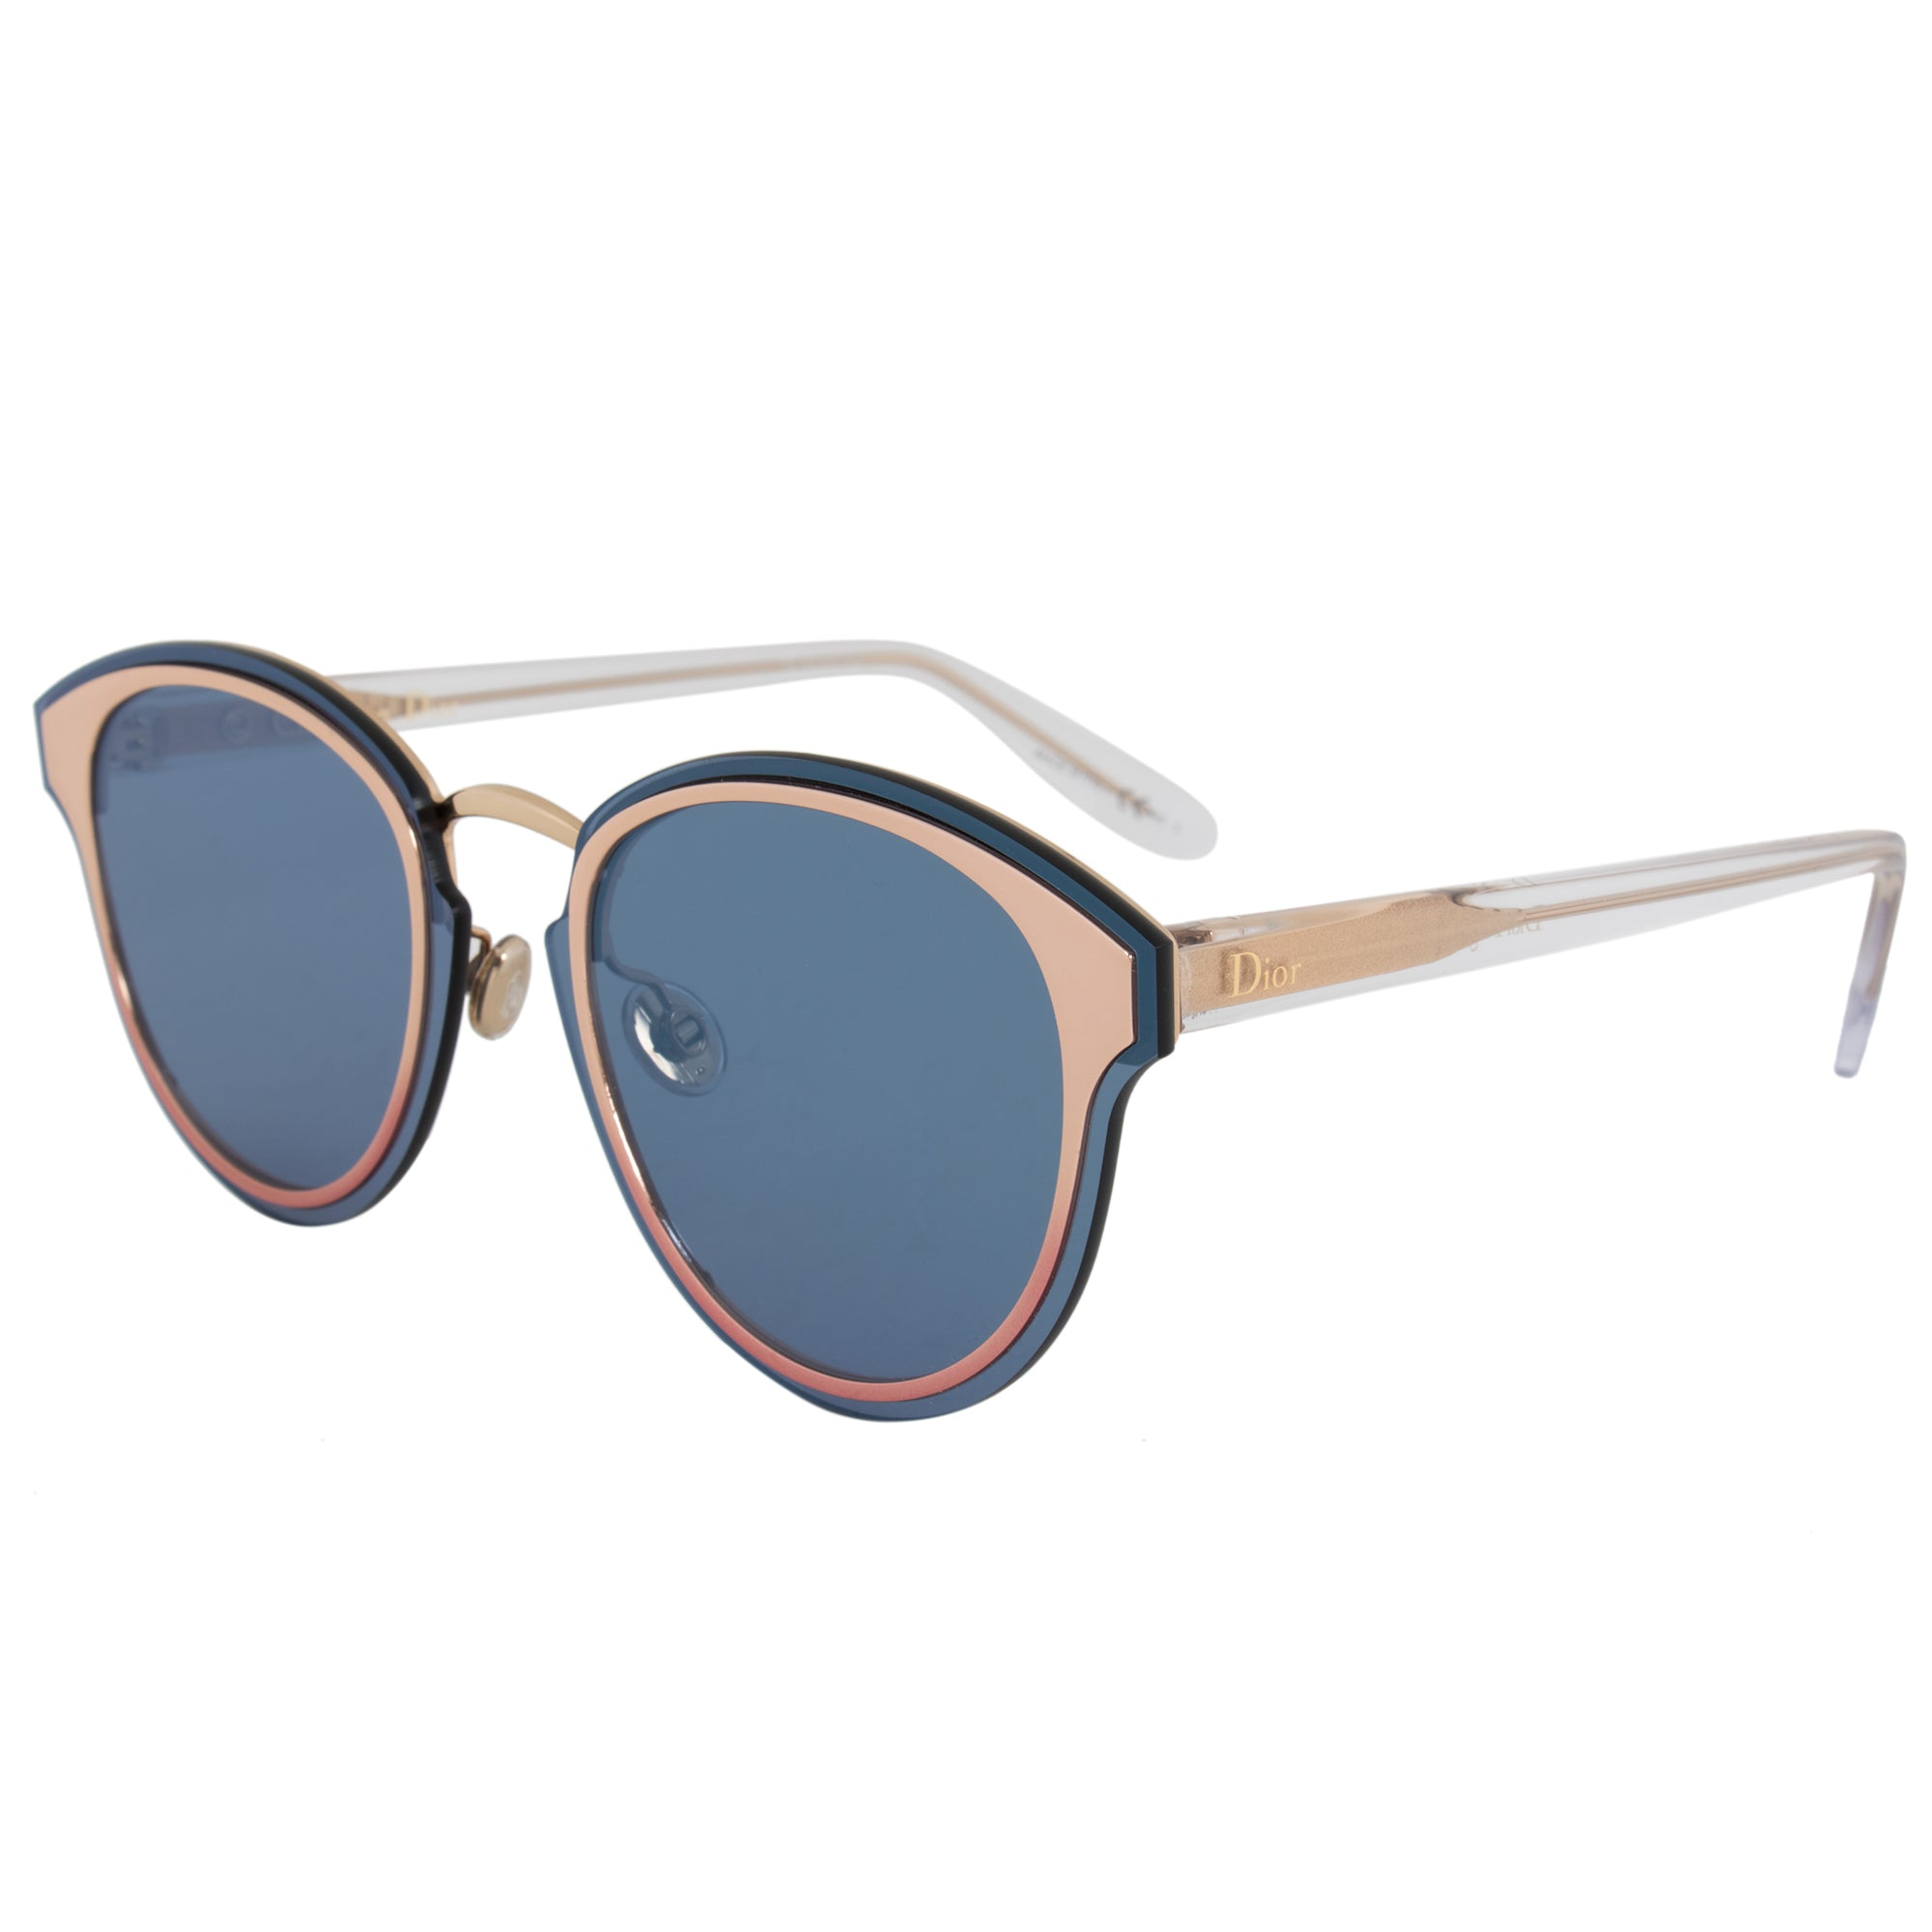 Christian Dior Nightfall Sunglasses 35J2A 65 | Rose Gold Frame | Blue Mirrored Lenses